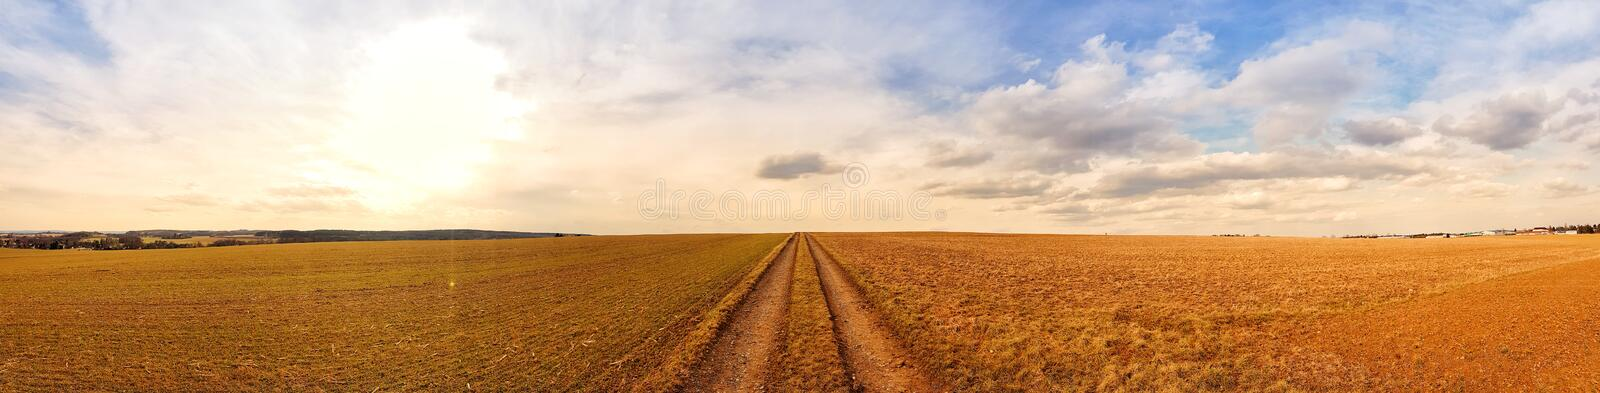 Scenic panorama view of natural landscape under a cloudy sky. Wide scenic view of landscape panorama under a cloudy sky in the nature with grass and trees stock photo